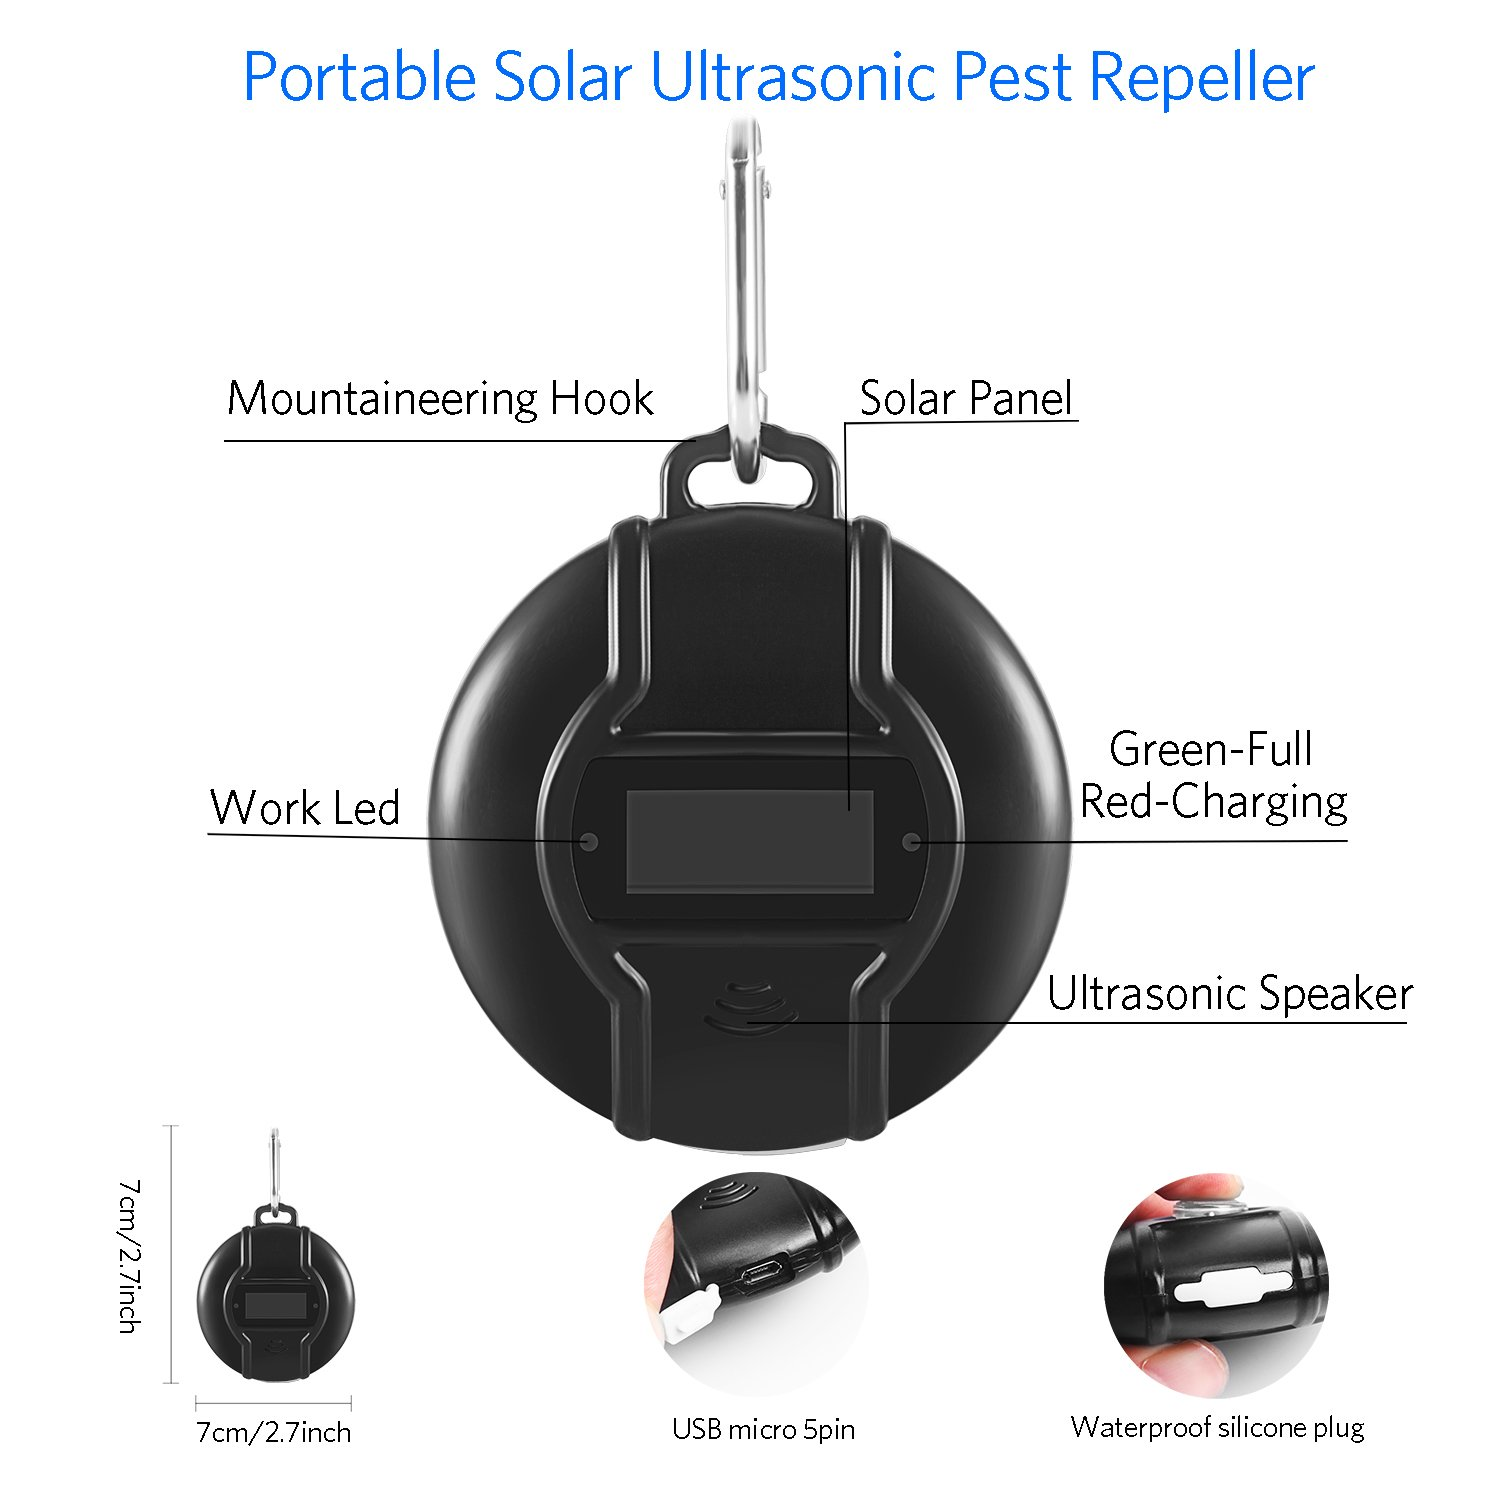 Solar Portable Ultrasonic Pest Repeller Or Electronic Mosquito Repellent Micro Usb Powered With Data Cable For Cockroach Spider